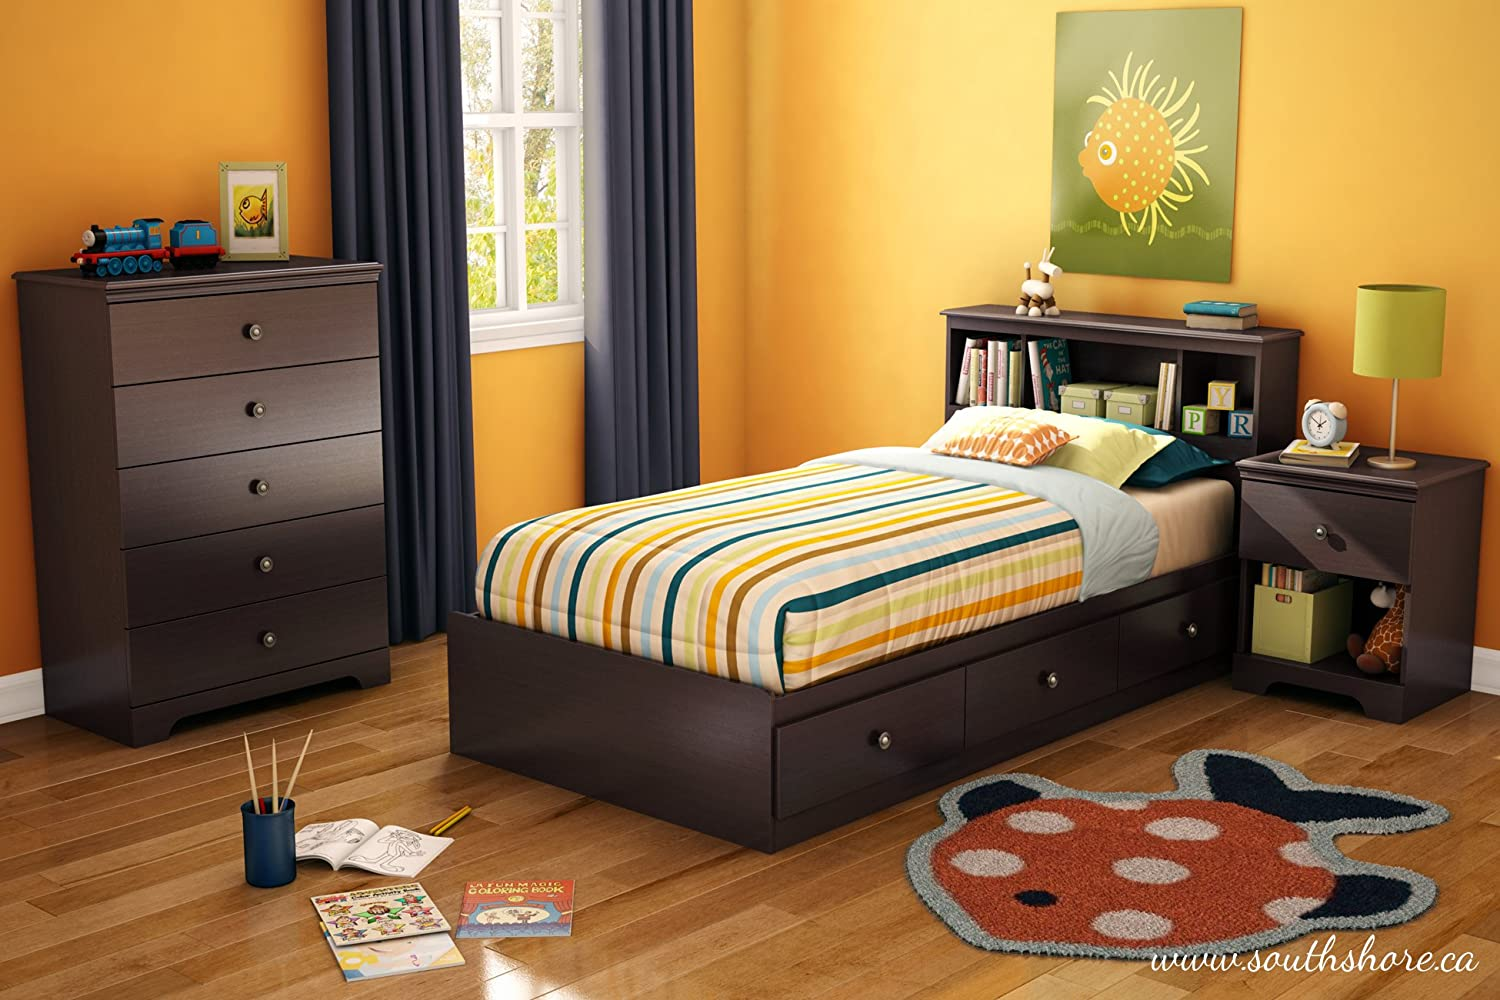 Amazon.com: South Shore Zach 5 Drawer Chest, Chocolate: Kitchen U0026 Dining